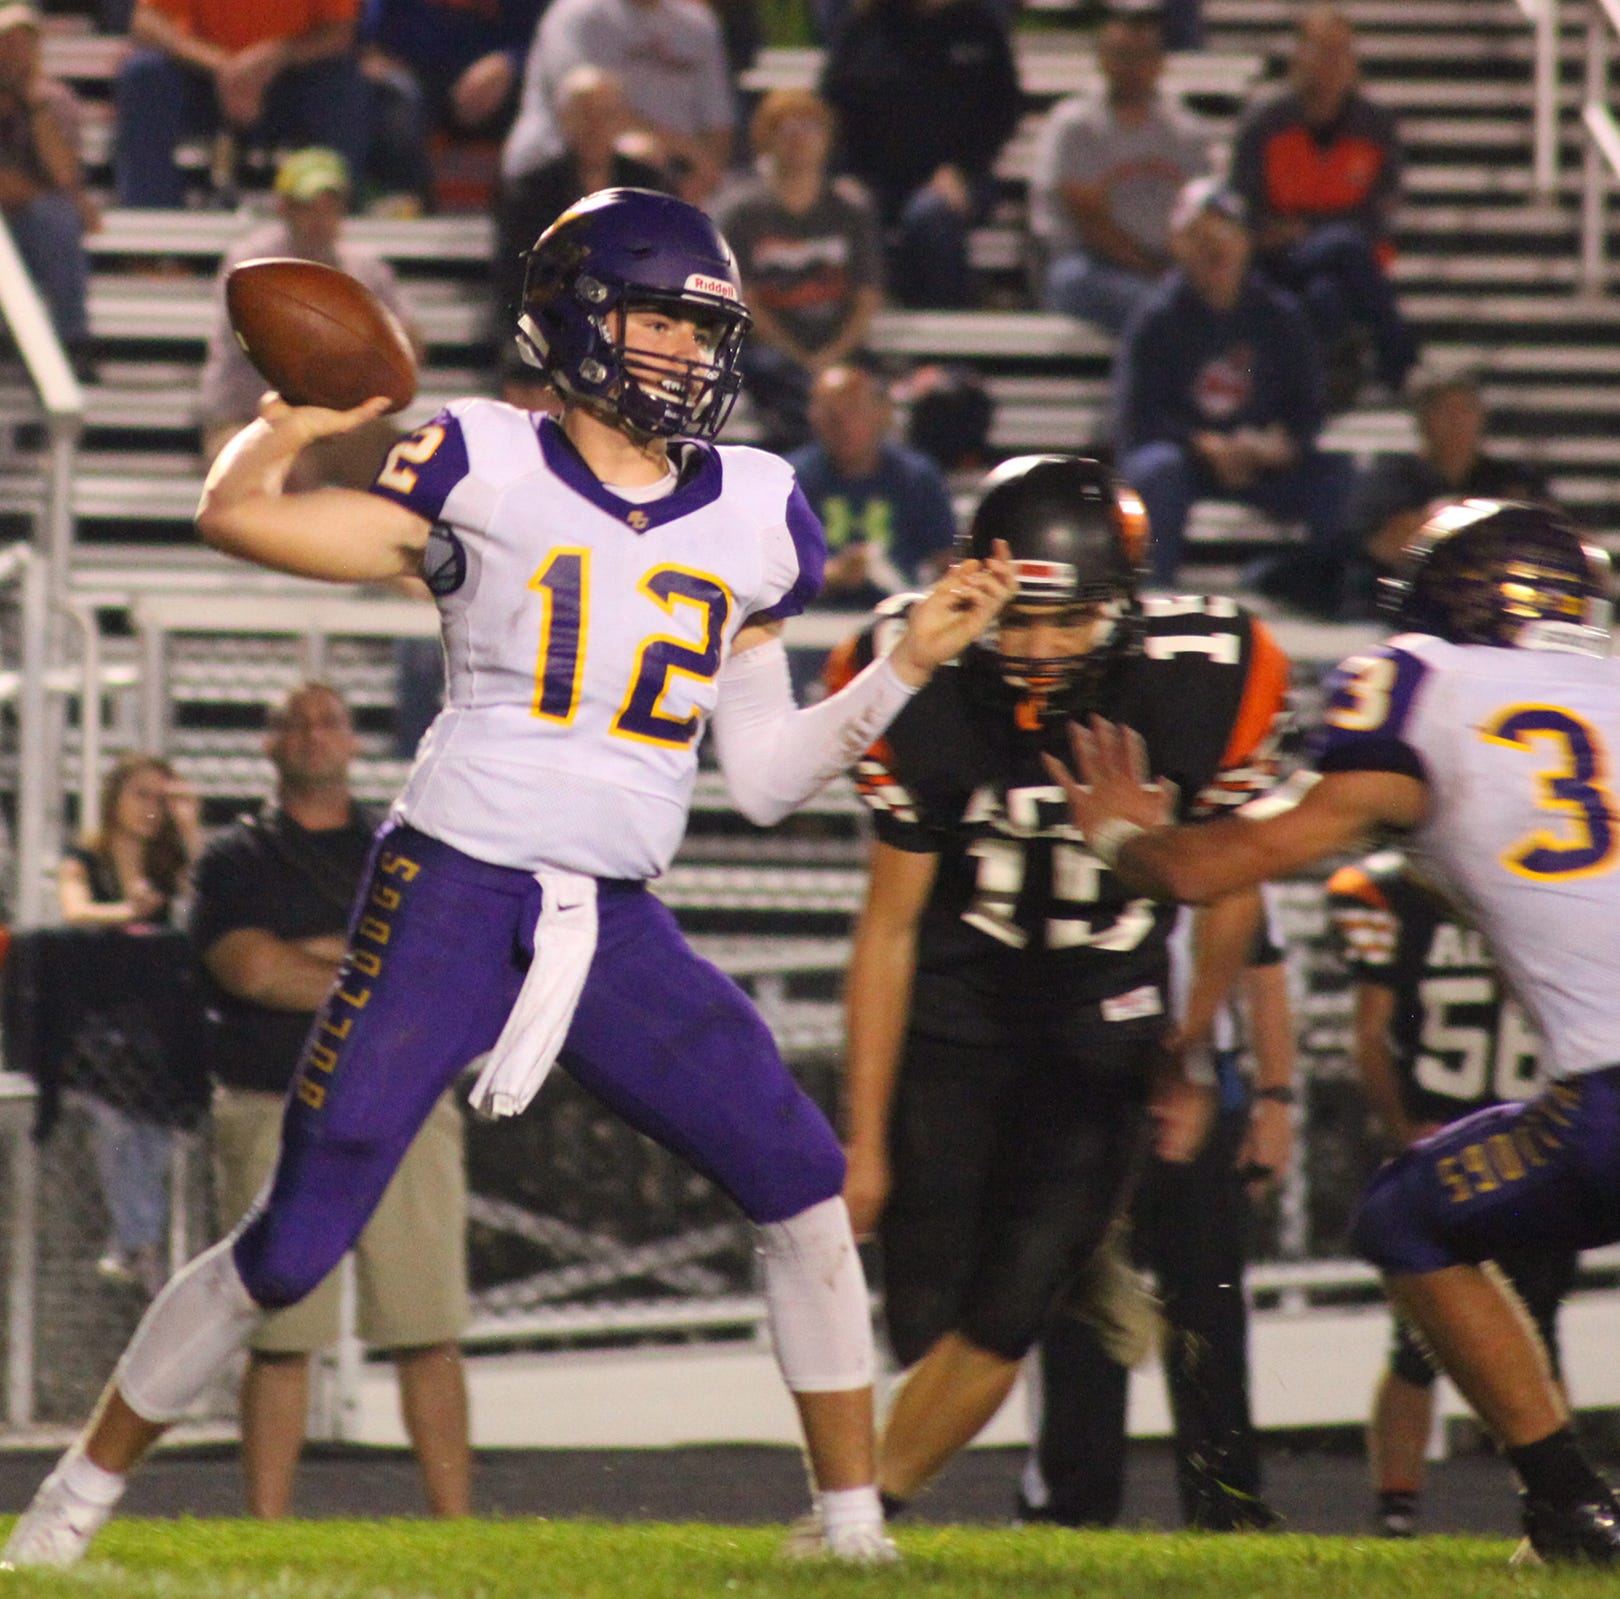 Inexperienced Bloom-Carroll will rely on Kuhns to lead the way